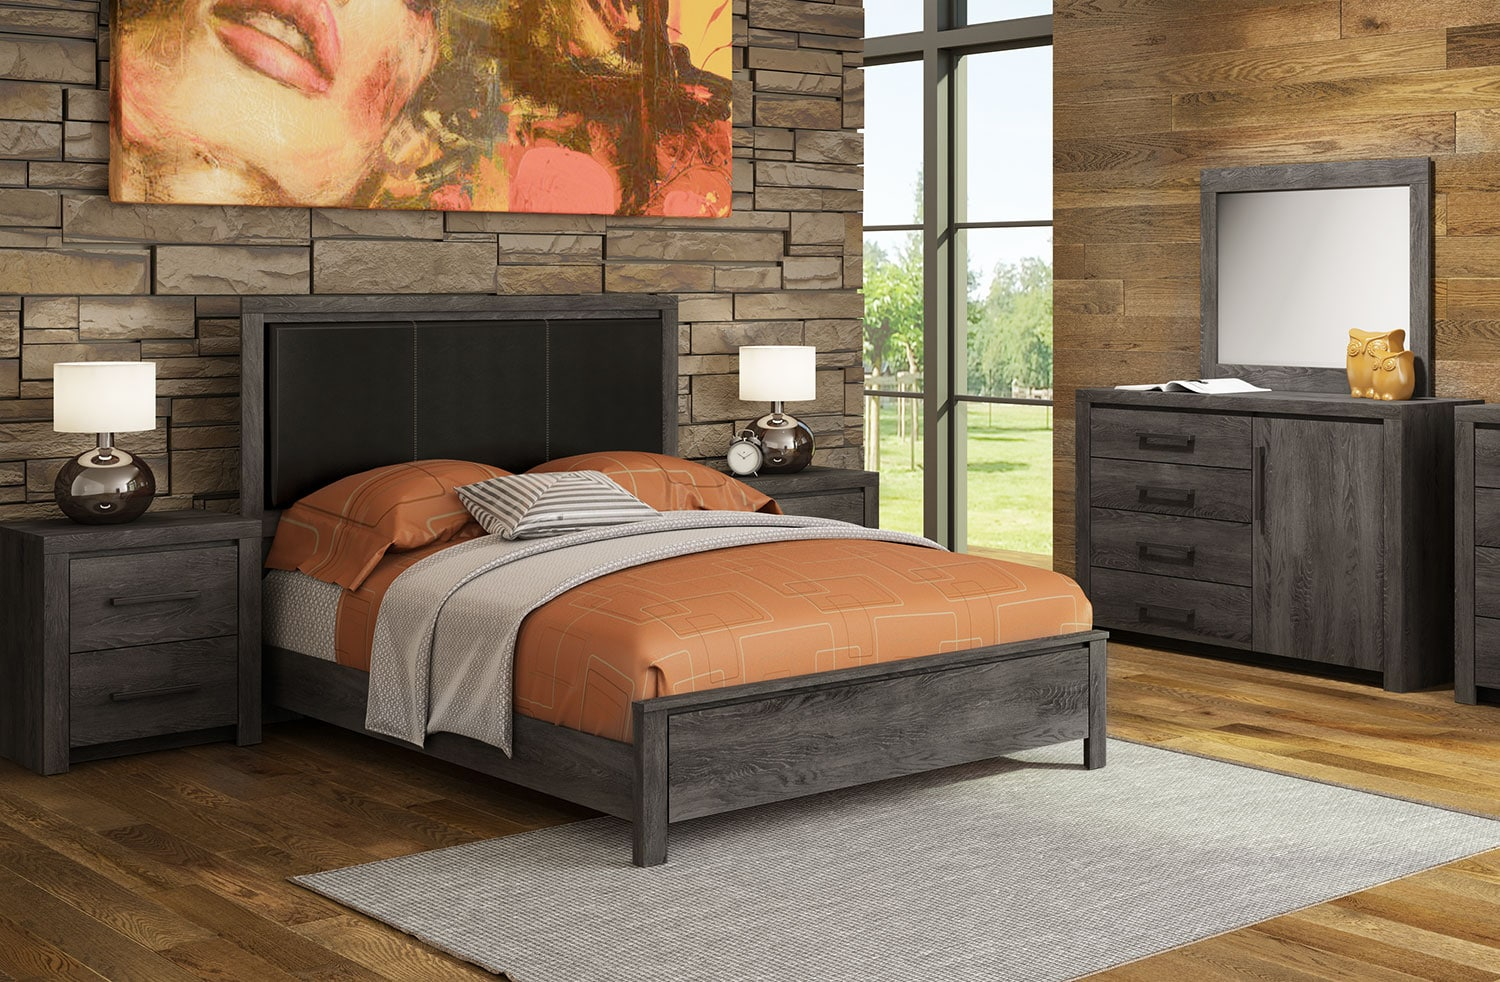 Driftwood 5-Piece King Bedroom Set - Rustic Brown